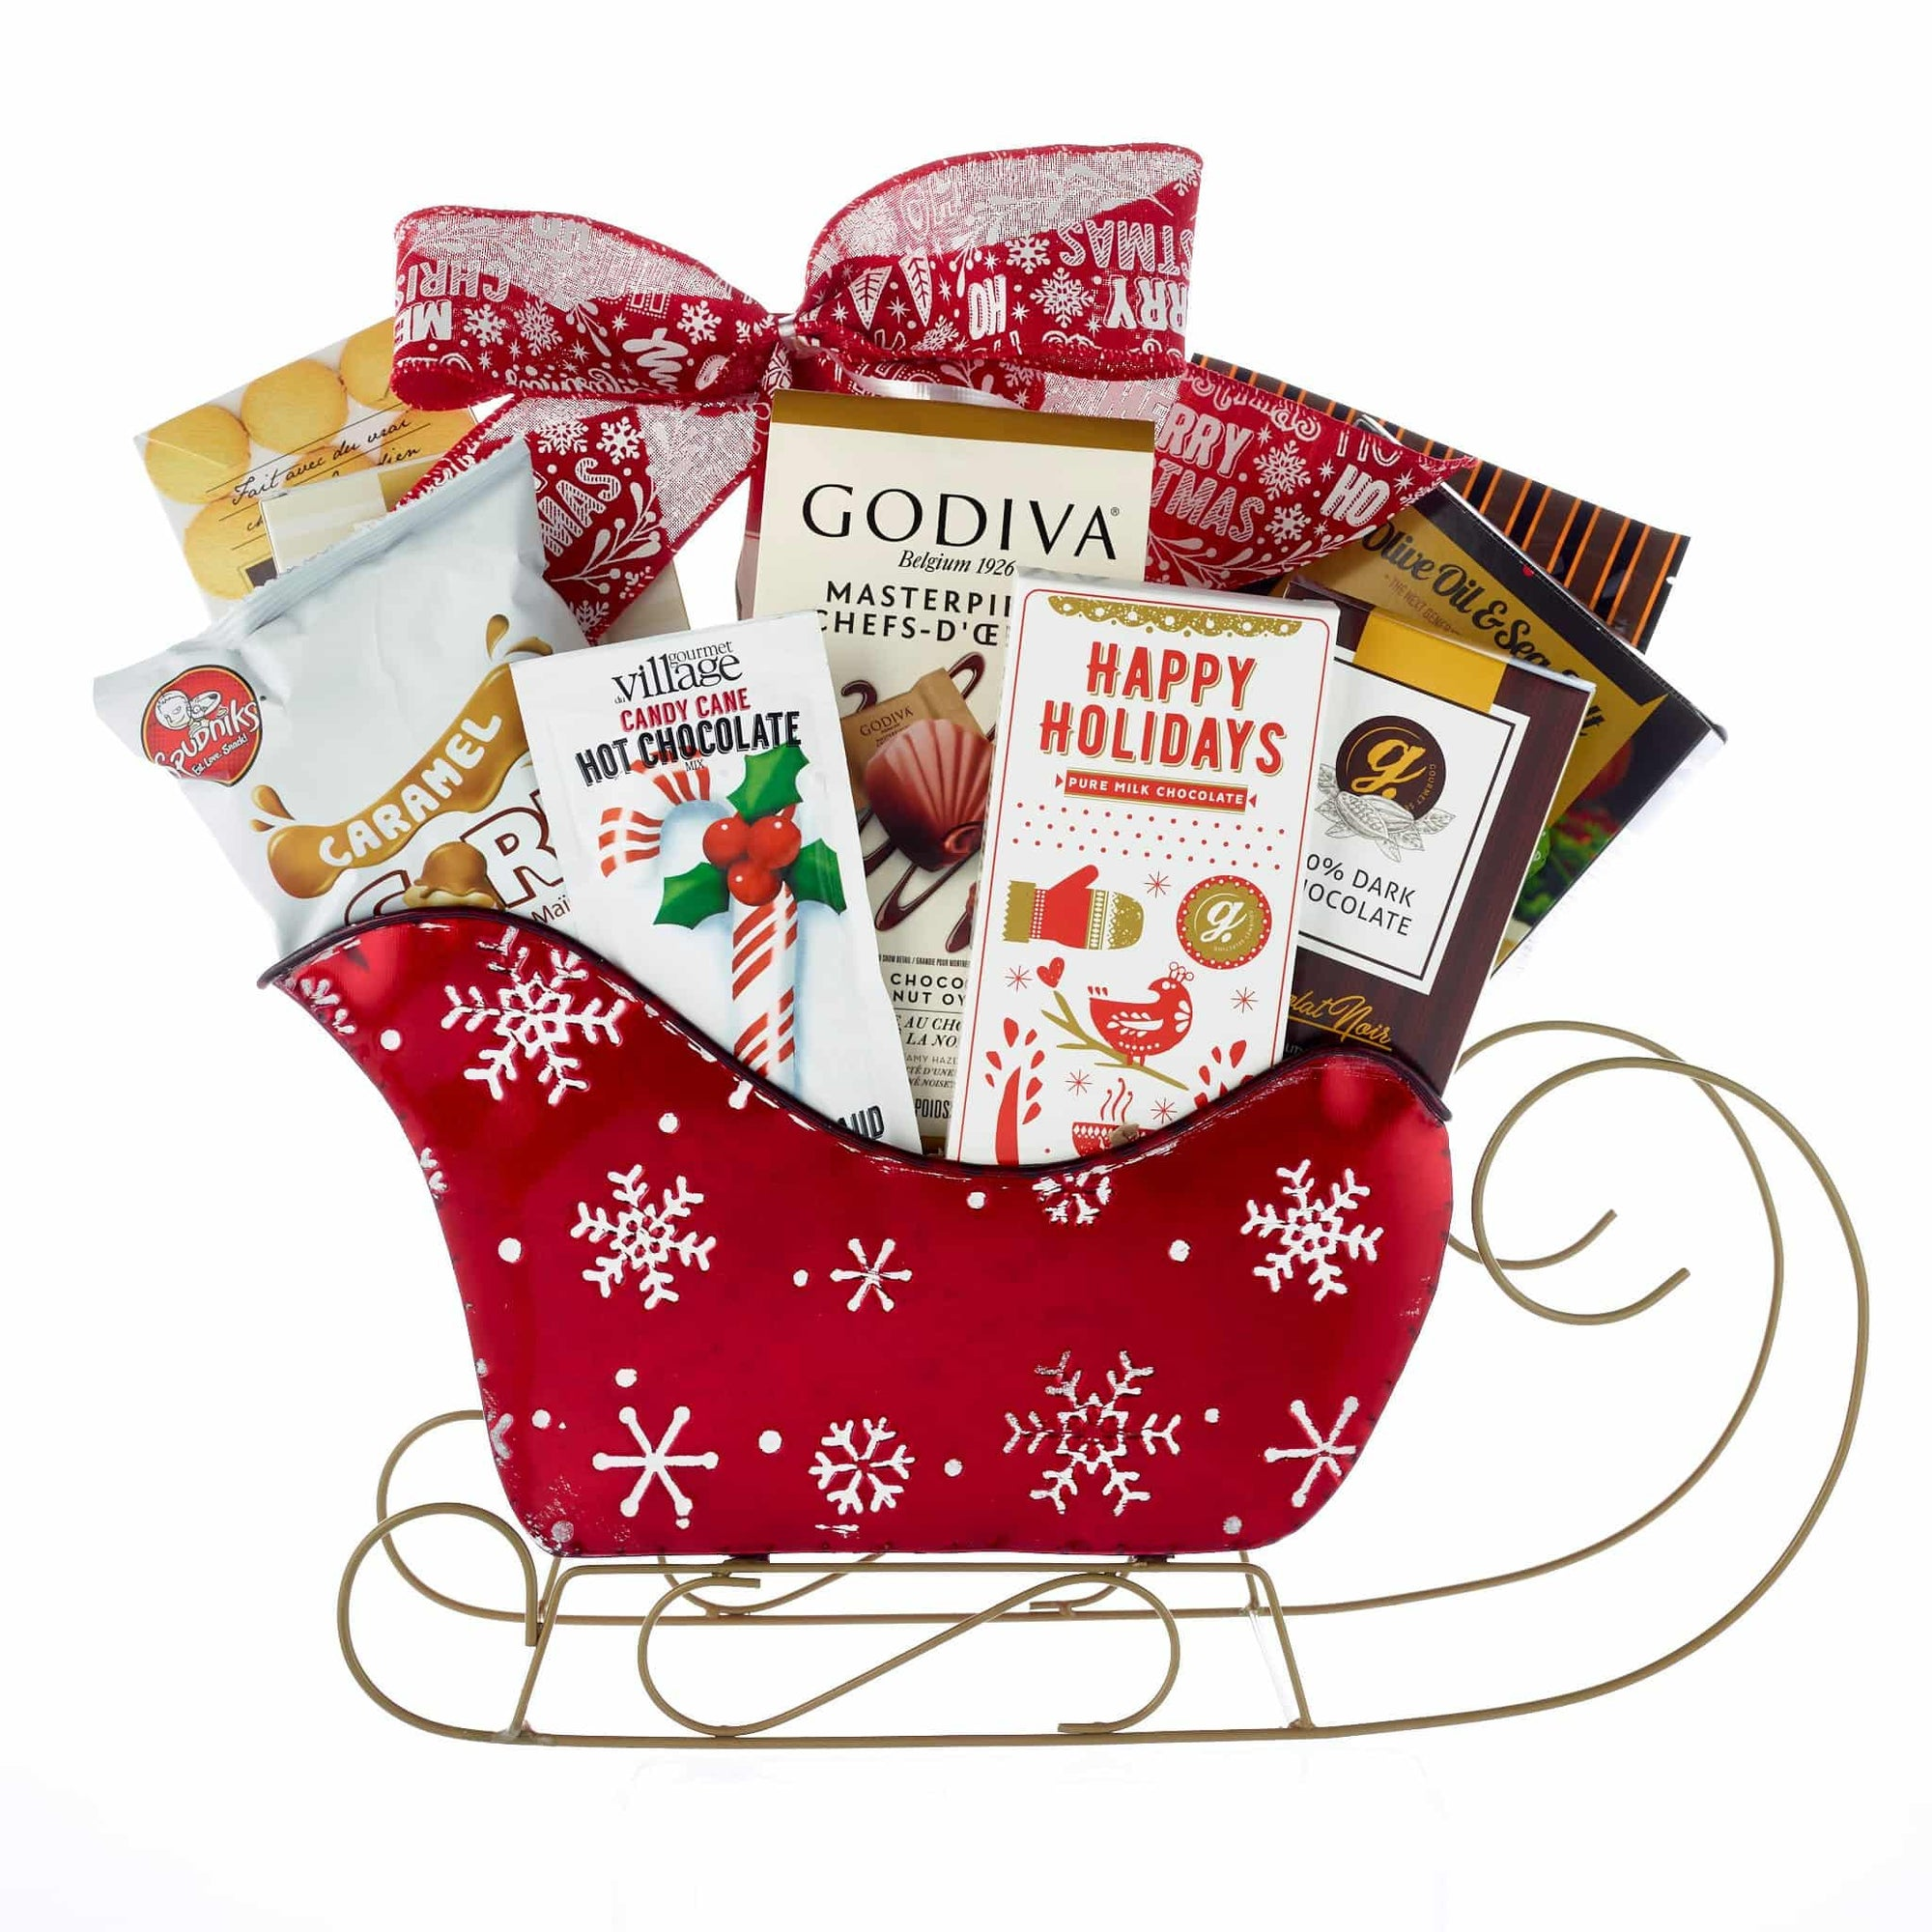 Christmas sleigh gift basket with chocolates, cookies and crackers